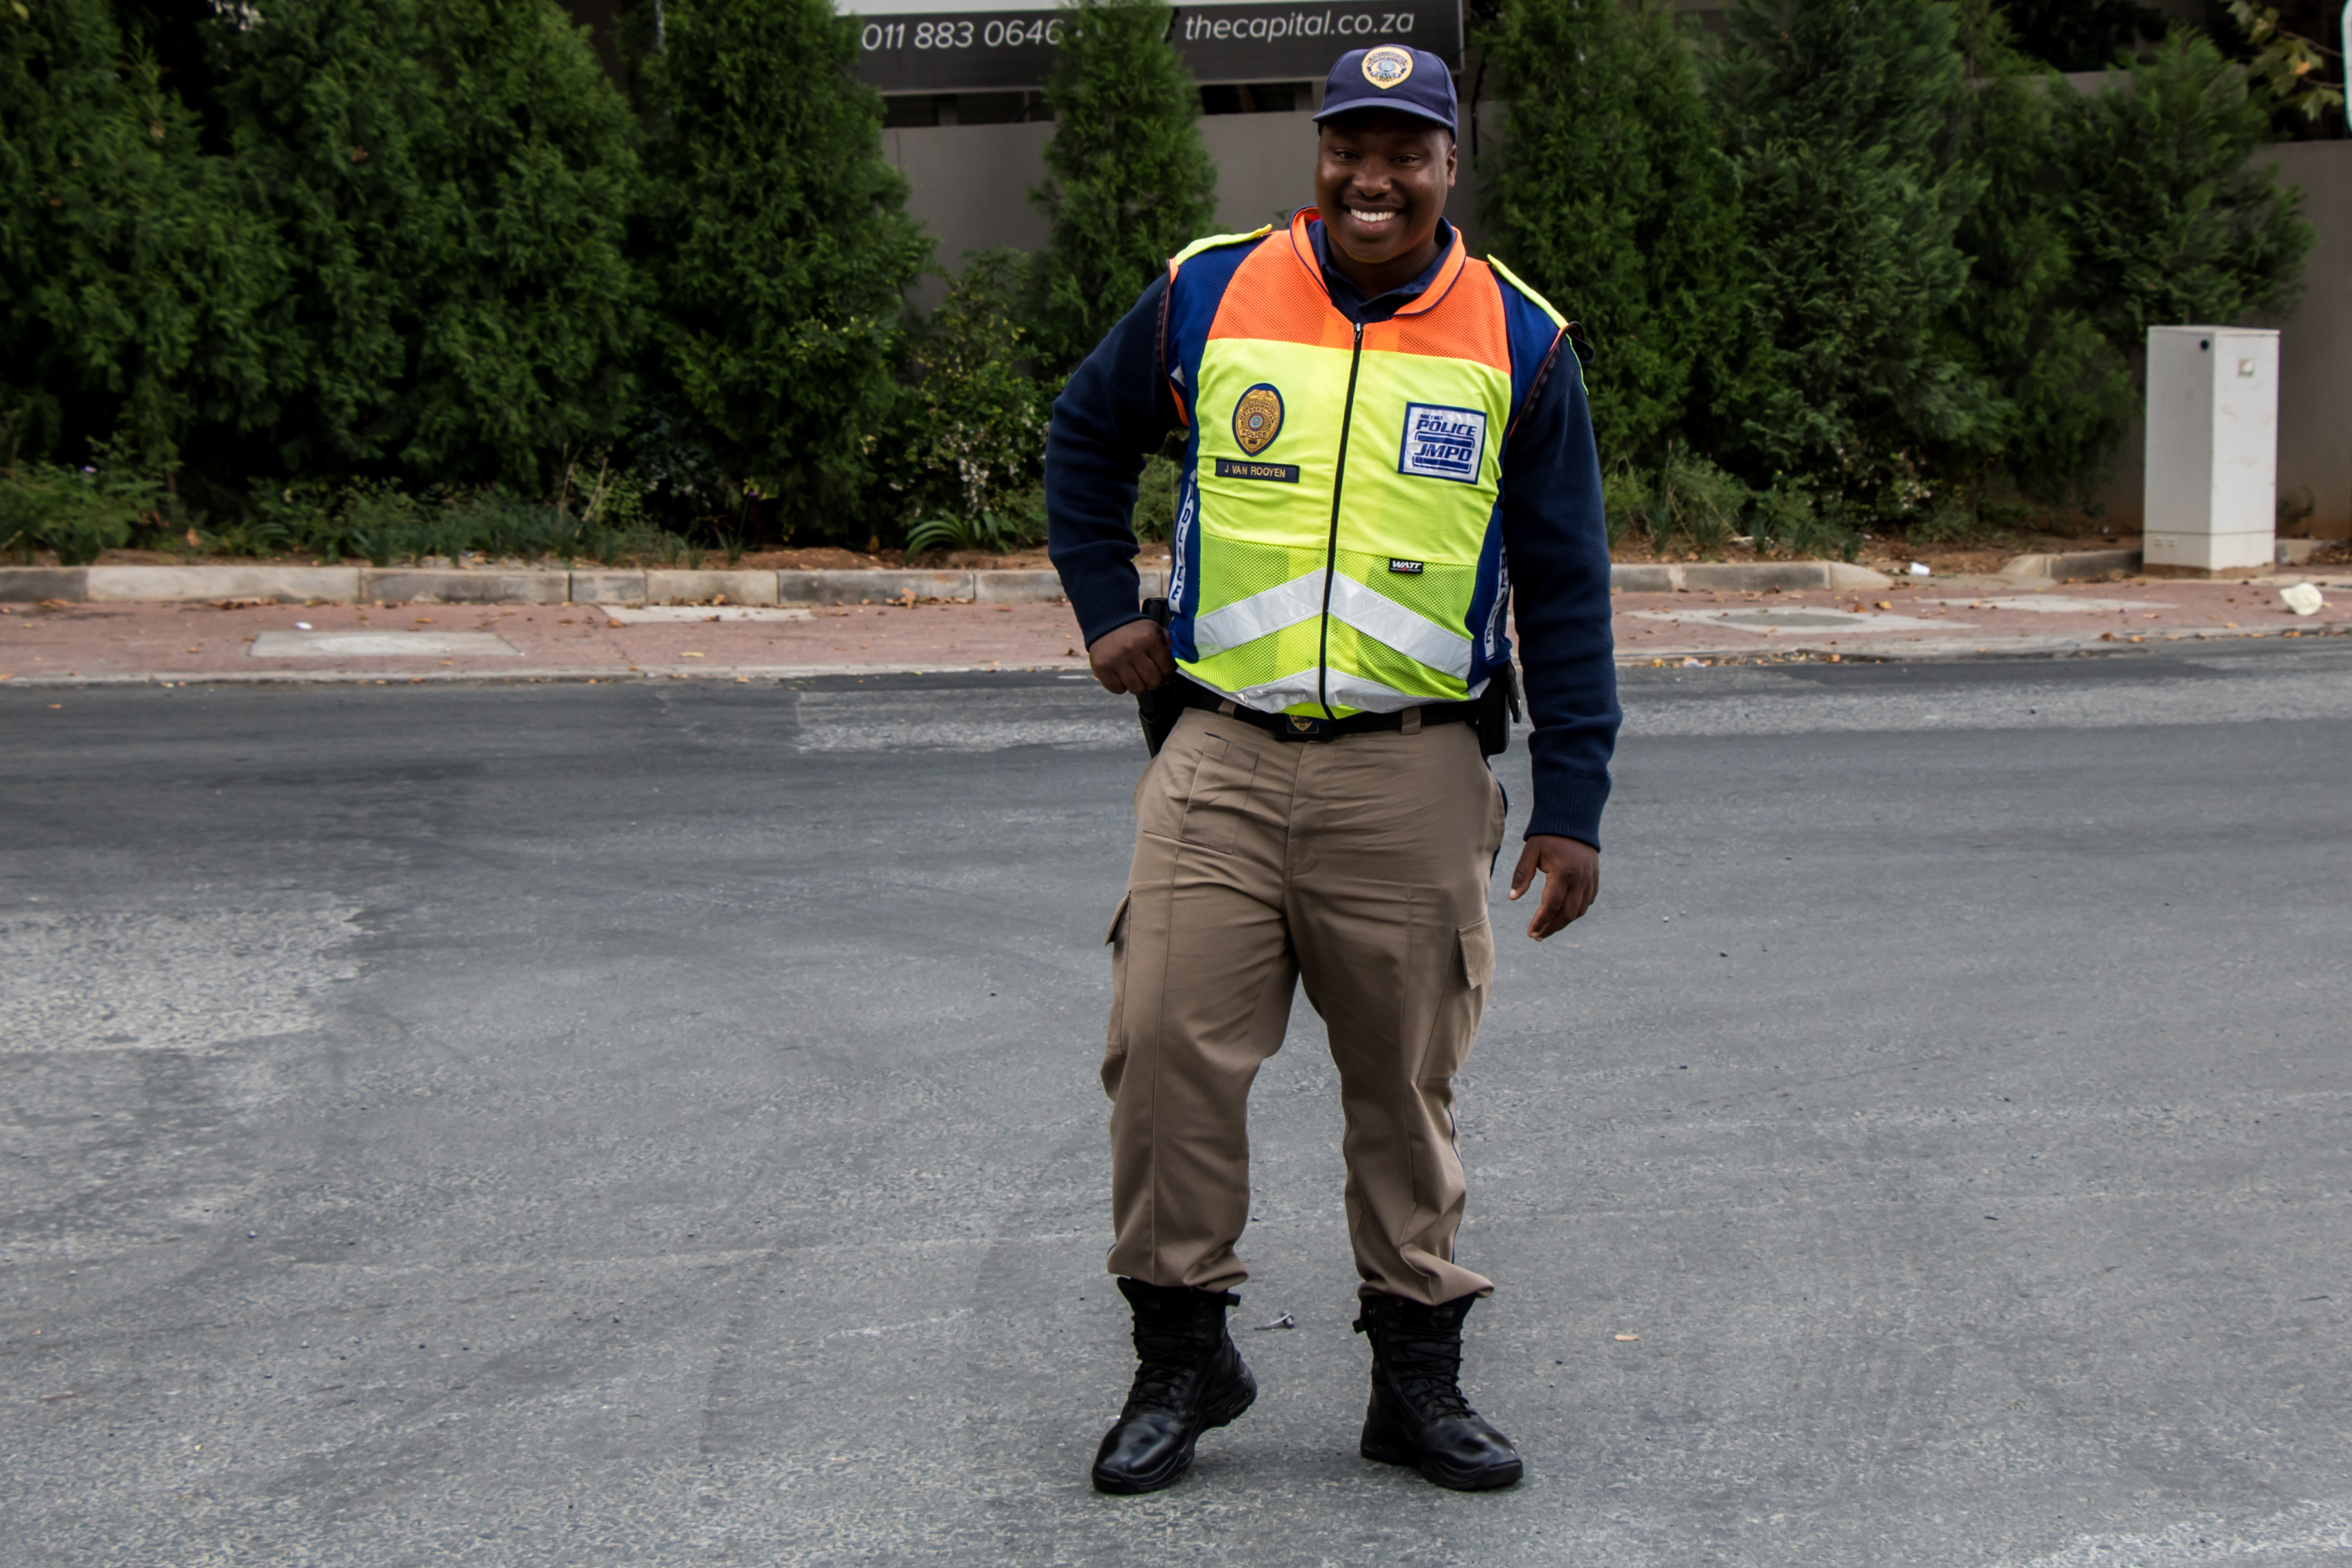 All smiles from JMPD